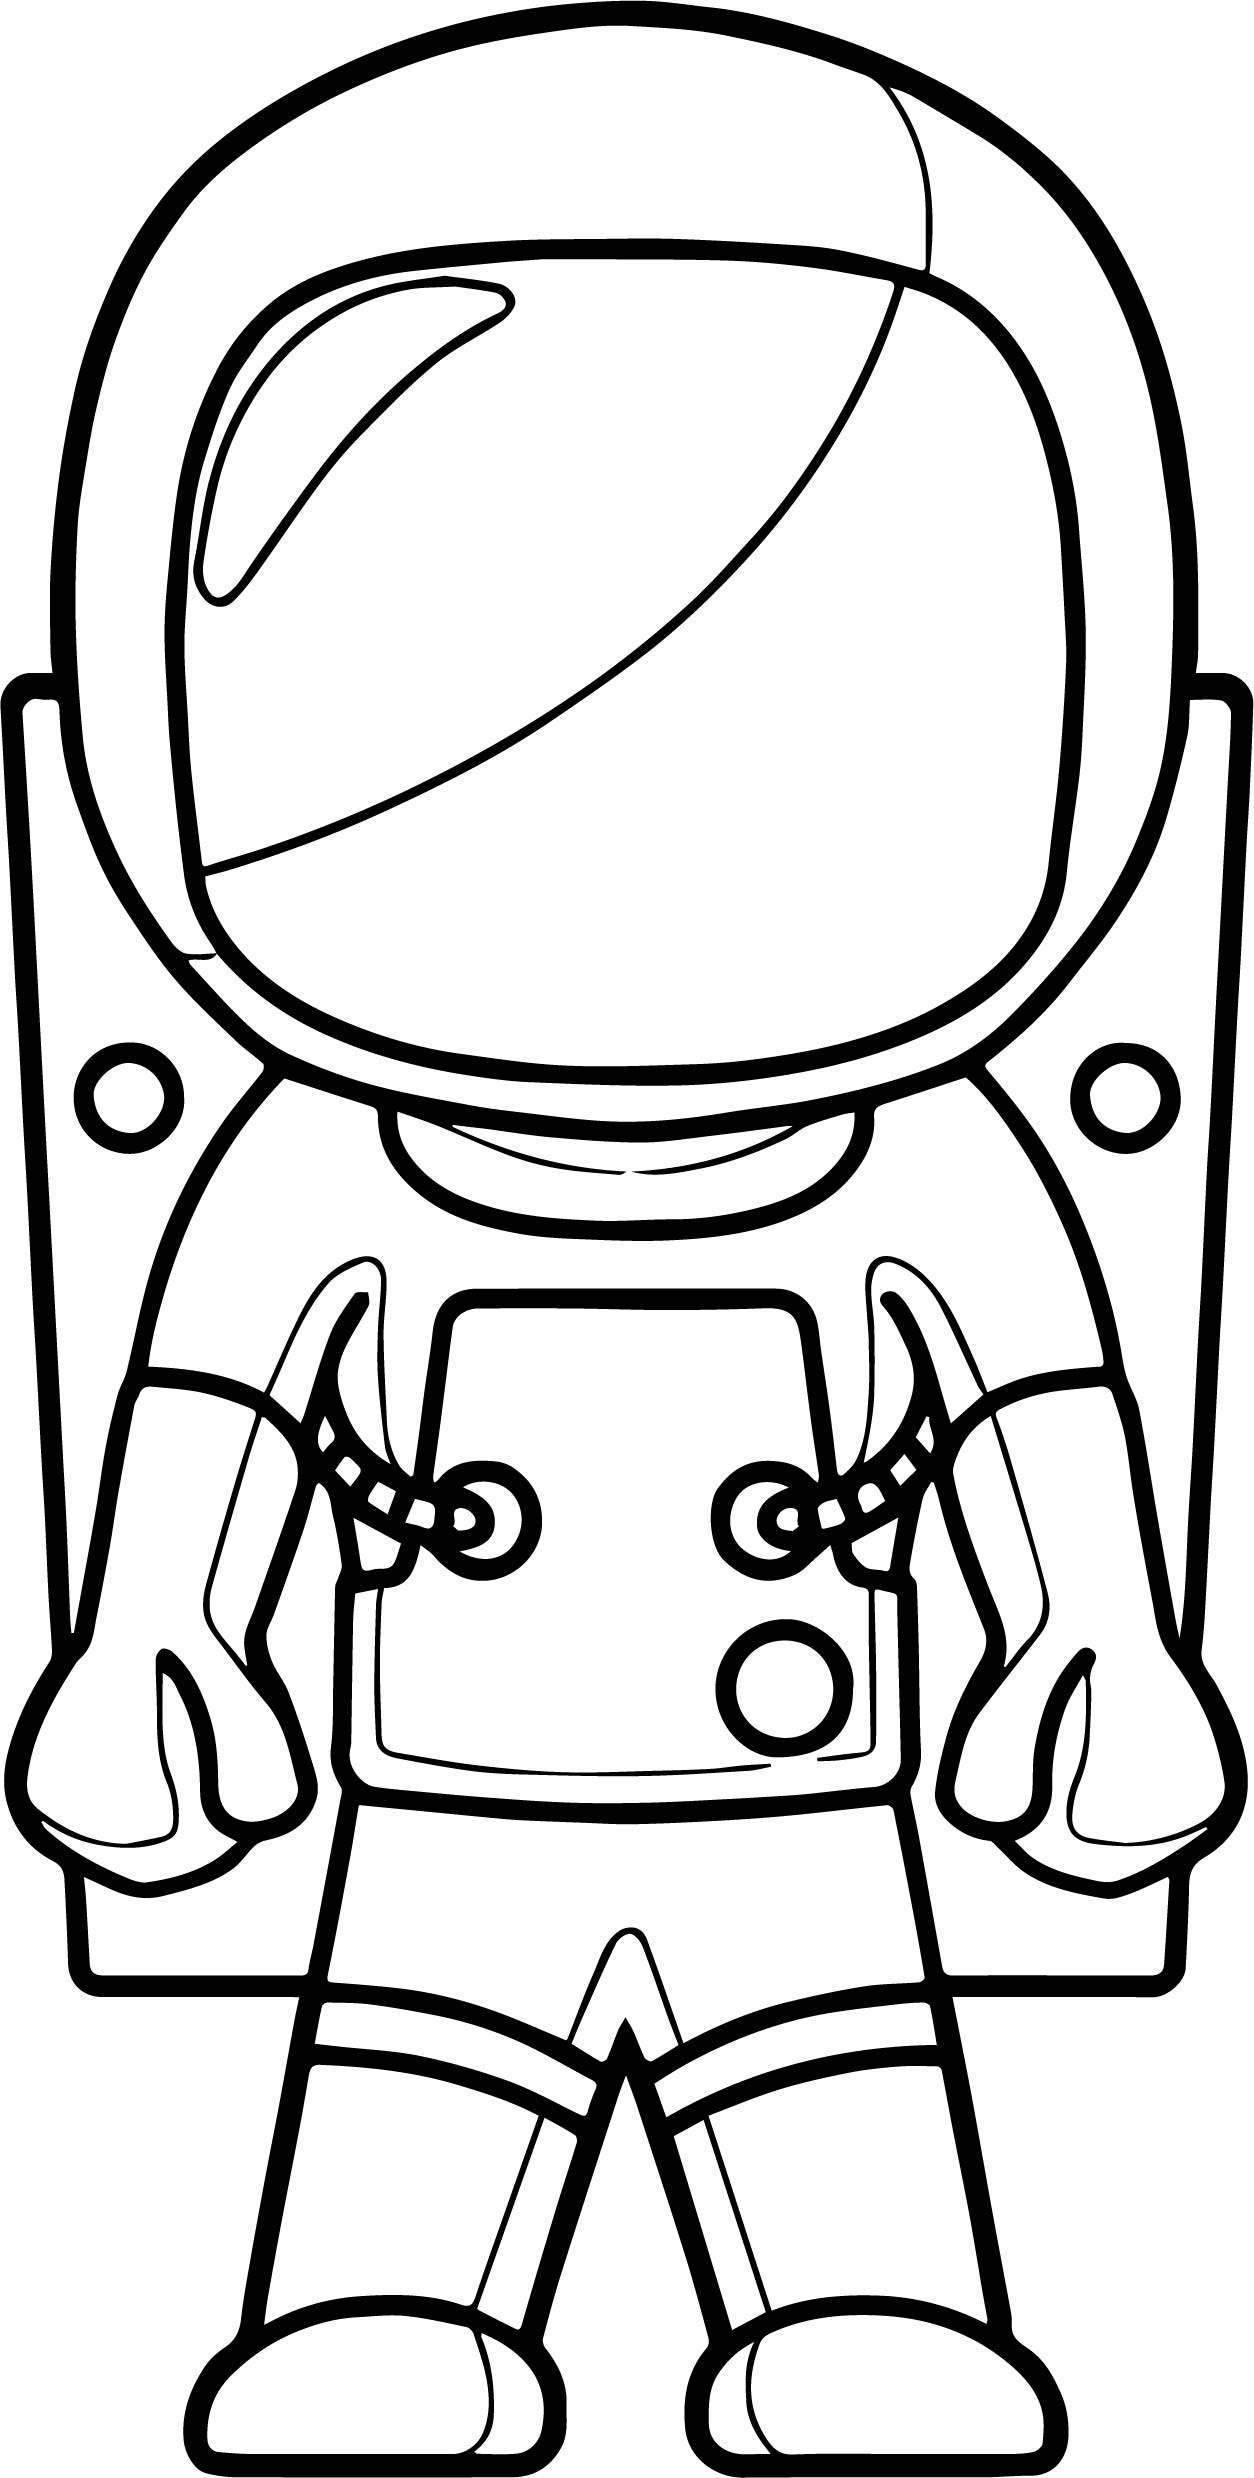 1254x2478 Great Astronaut Coloring Page Colouring To Sweet Closed Astronaut